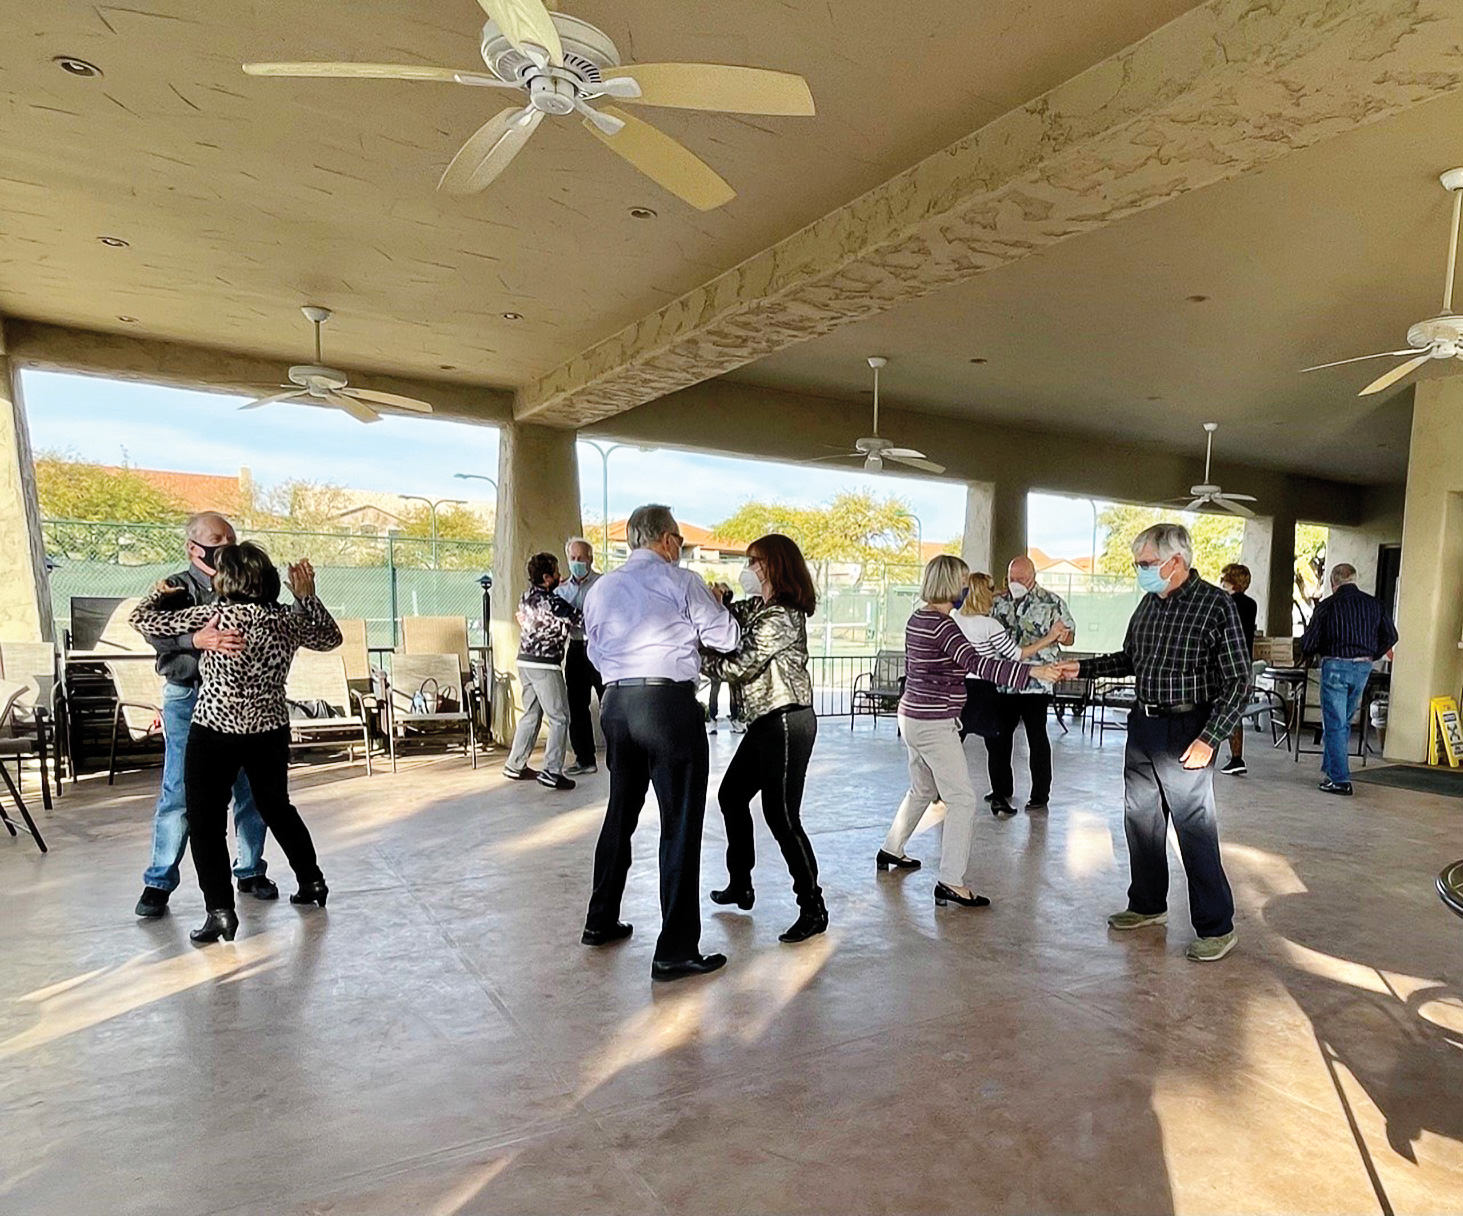 Dancing at the tennis pavilion—outdoors, socially distanced, and with masks.